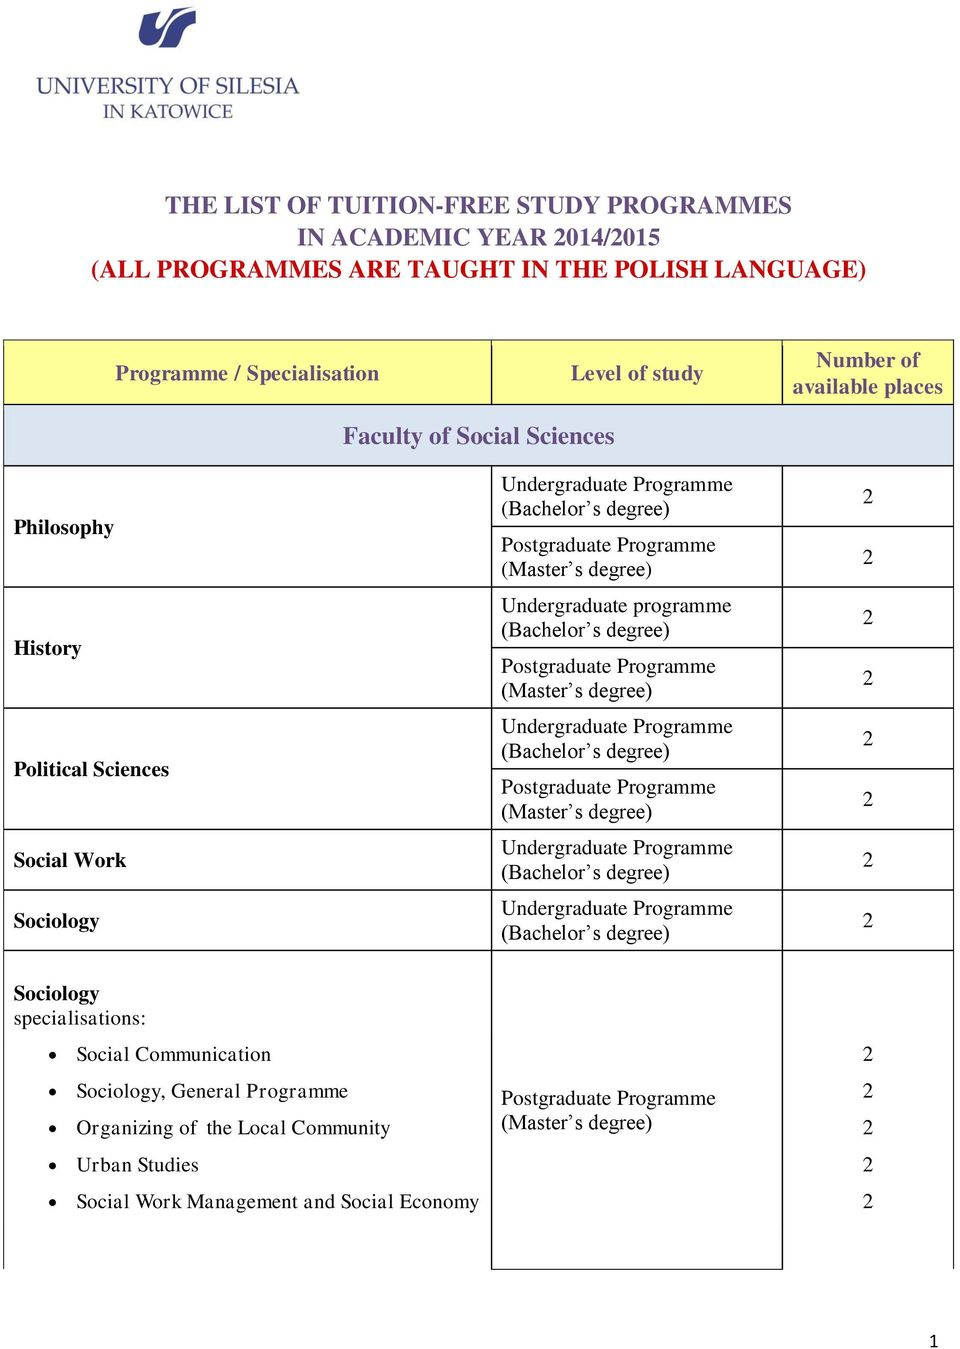 Social Work Sociology Faculty of Social Sciences Undergraduate programme Sociology Social Communication